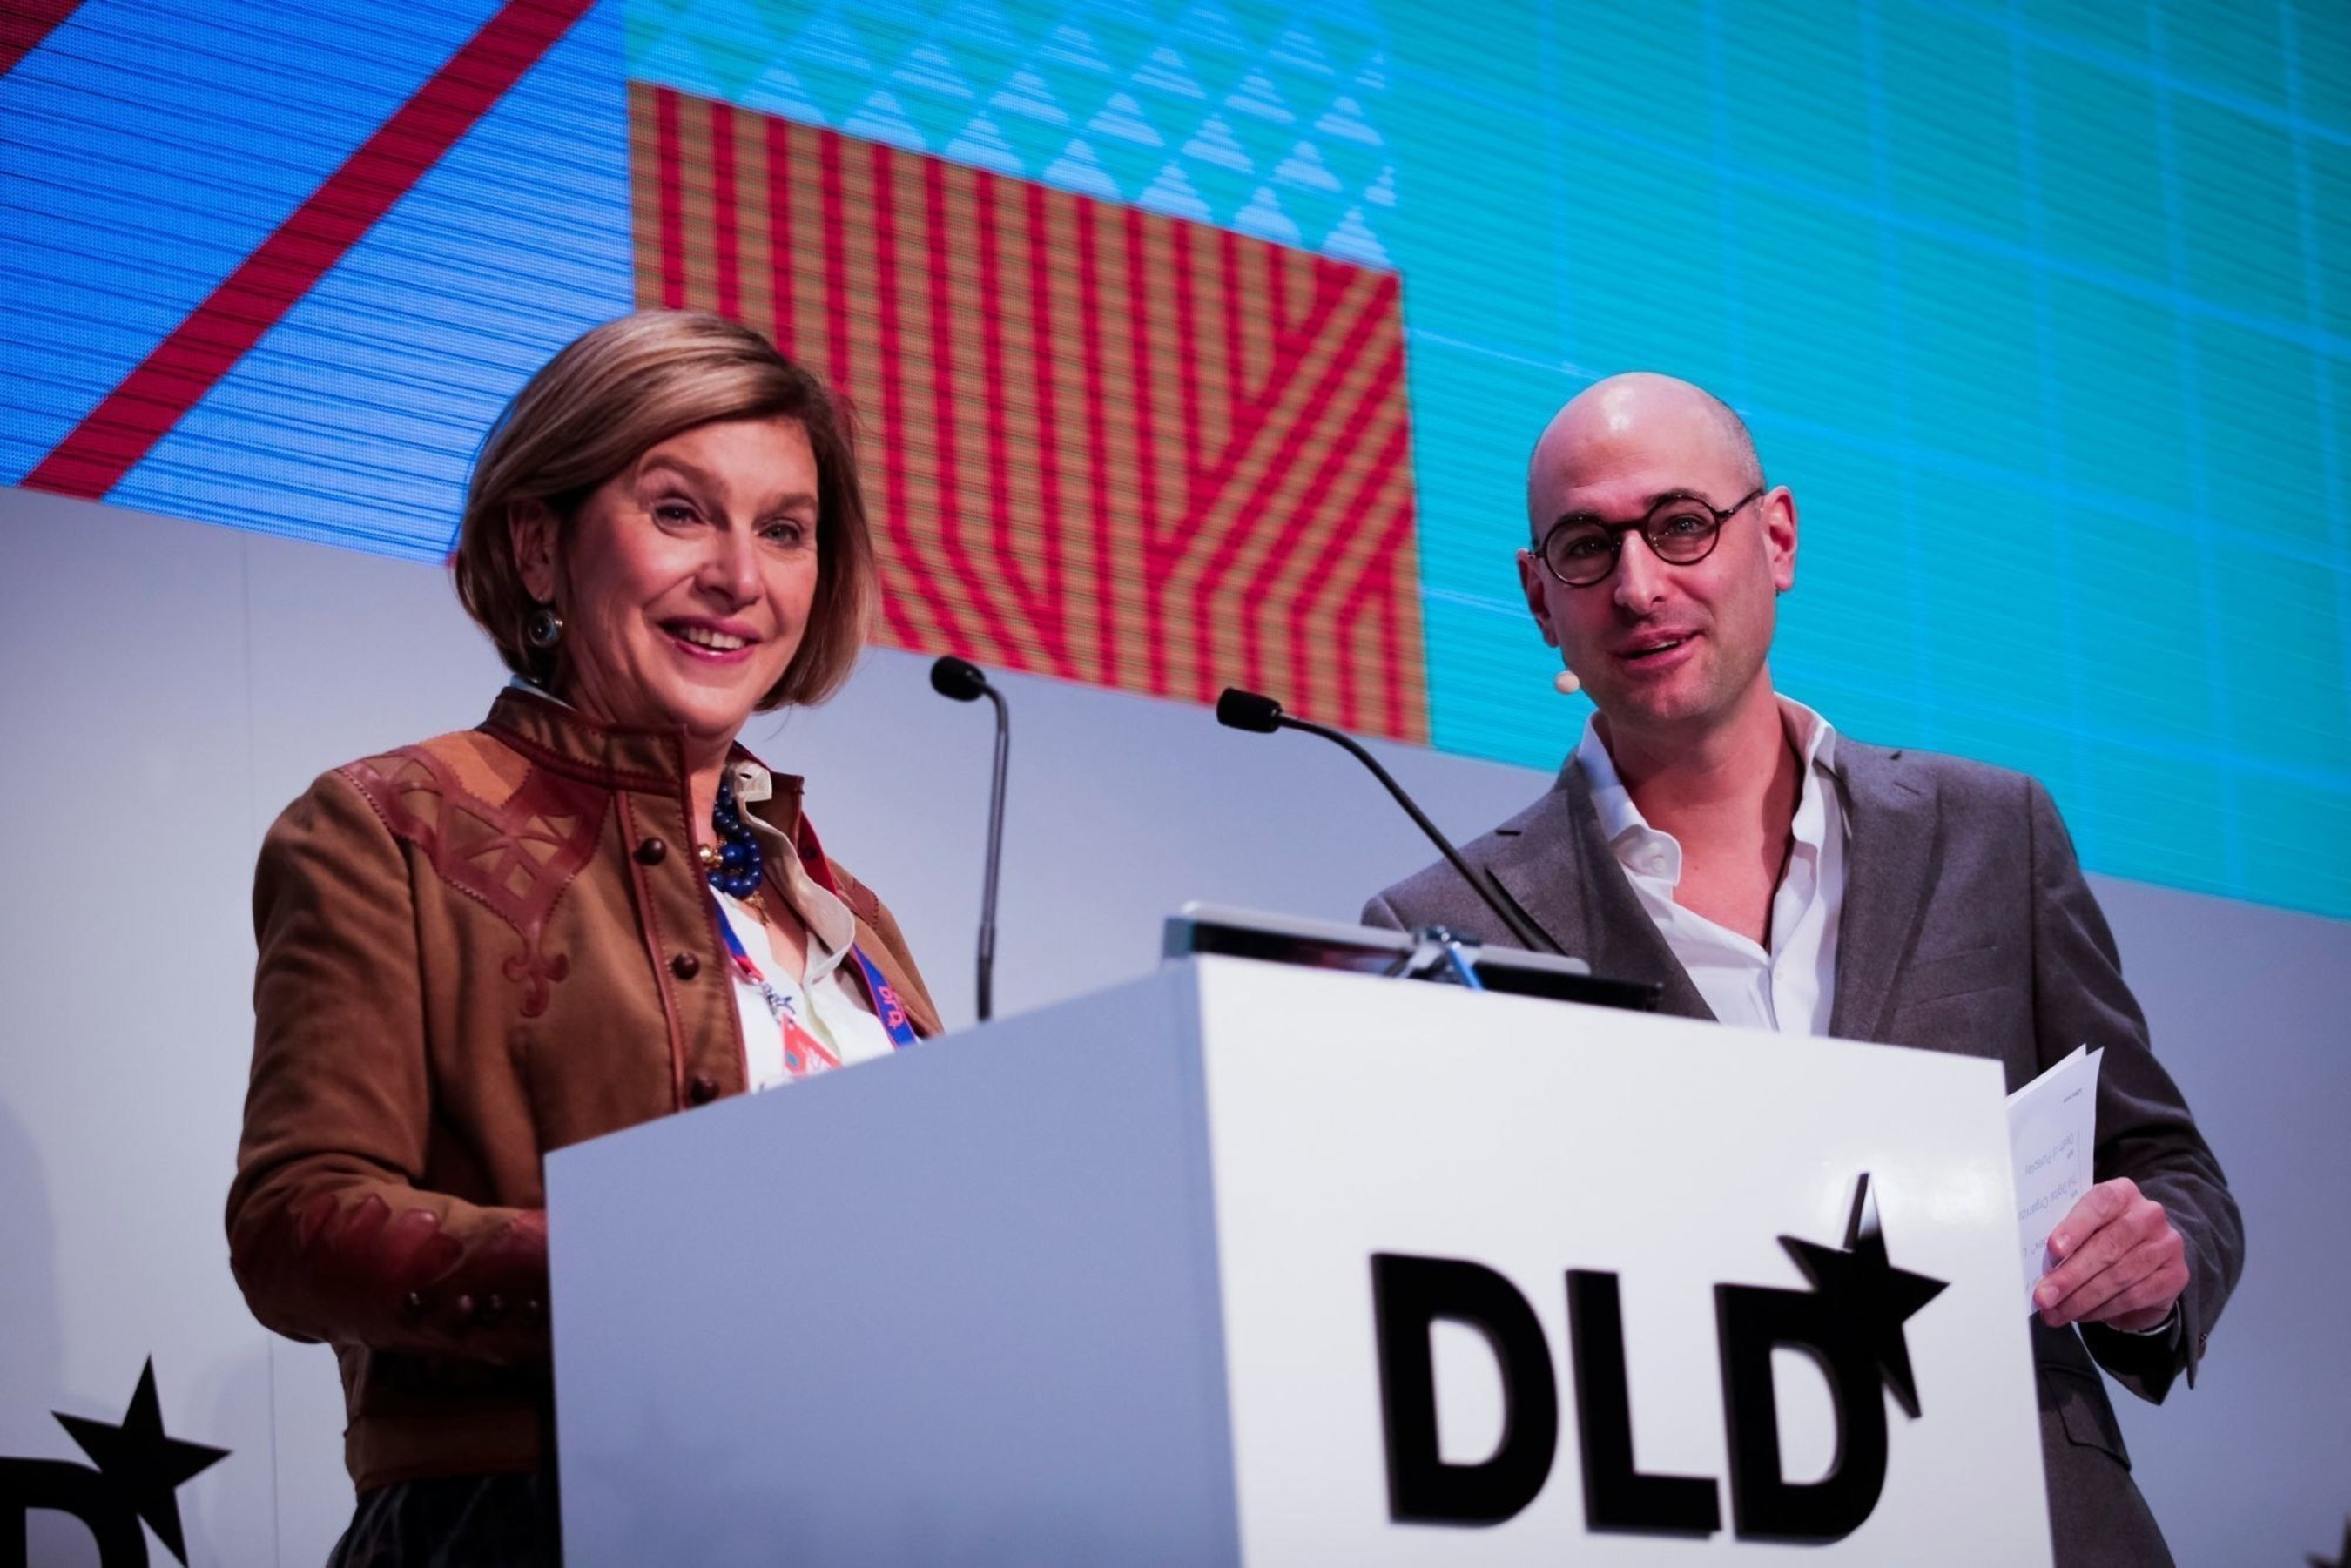 DLD16: Digital Visionaries Gather in Munich